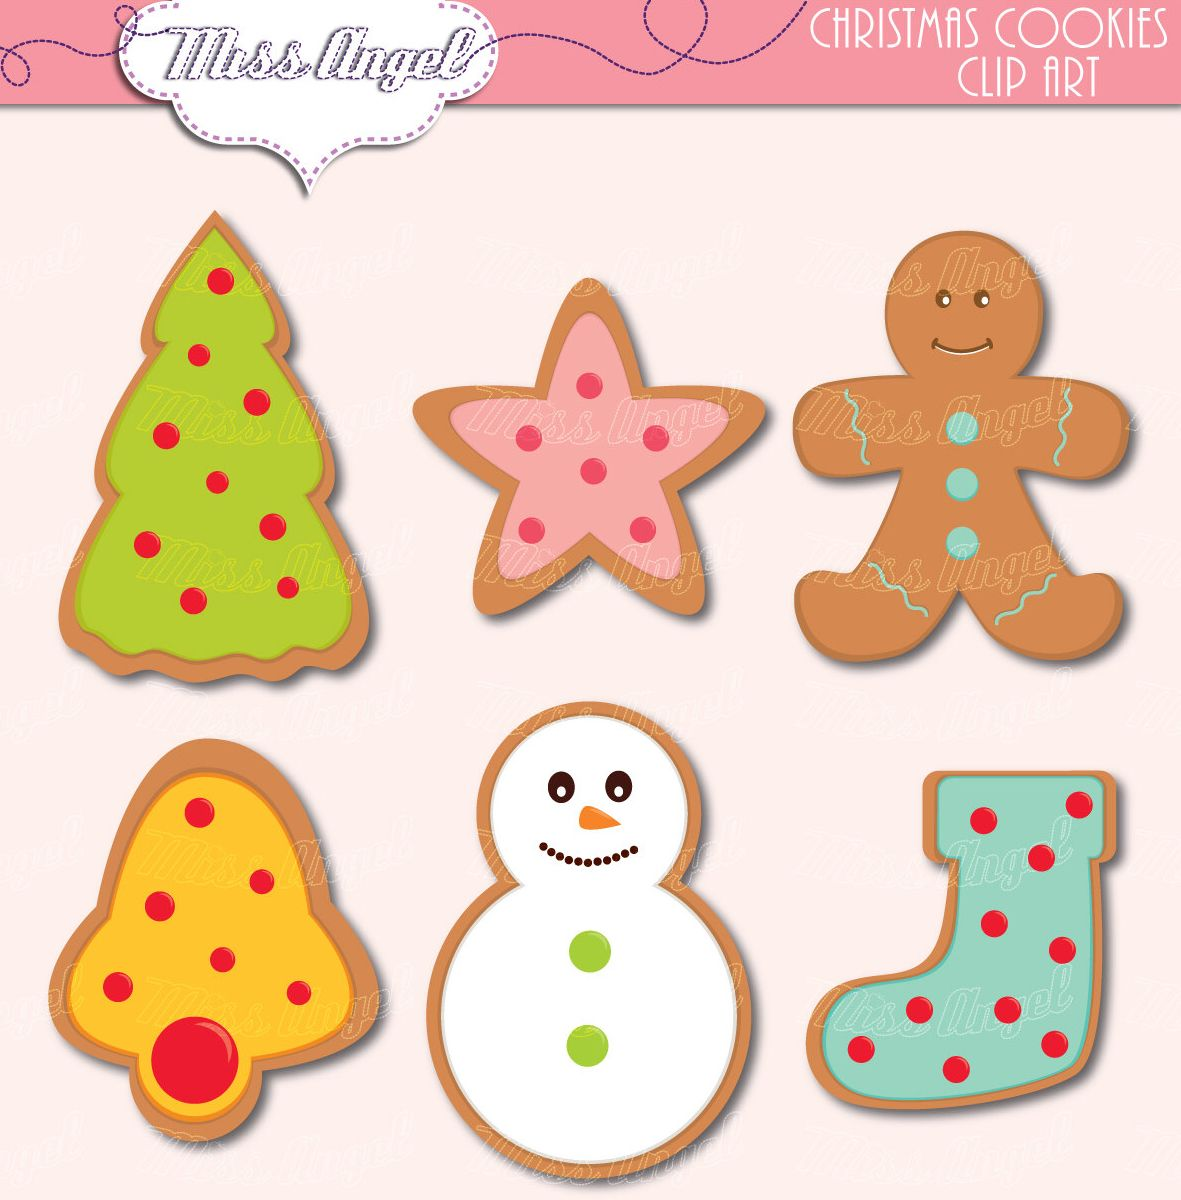 Cute ginger cookies clipart. Christmas Cookies clip art.